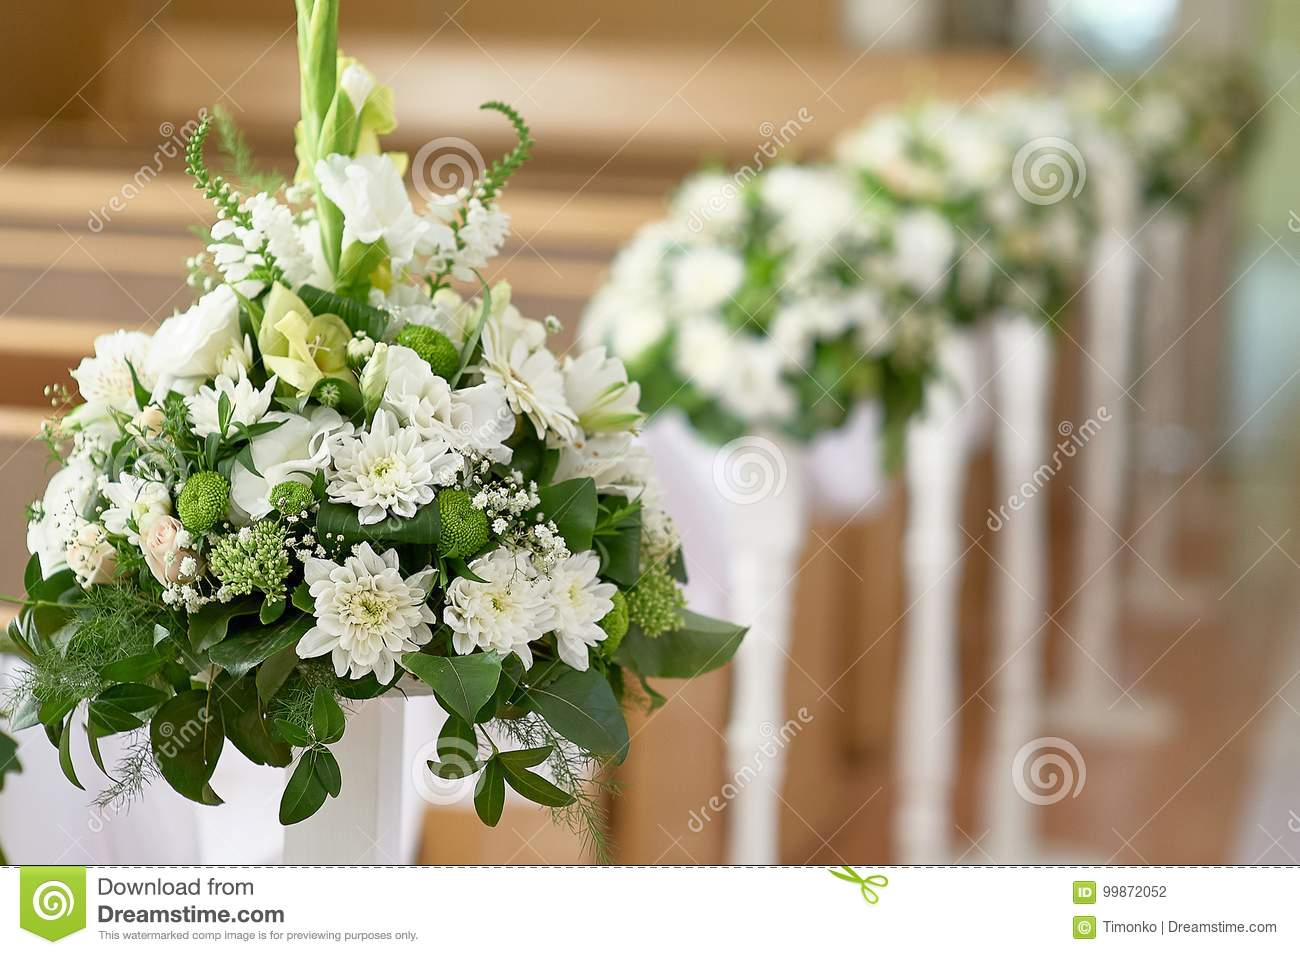 Beautiful Decor Of White Flowers In Church For A Wedding Ceremony ...